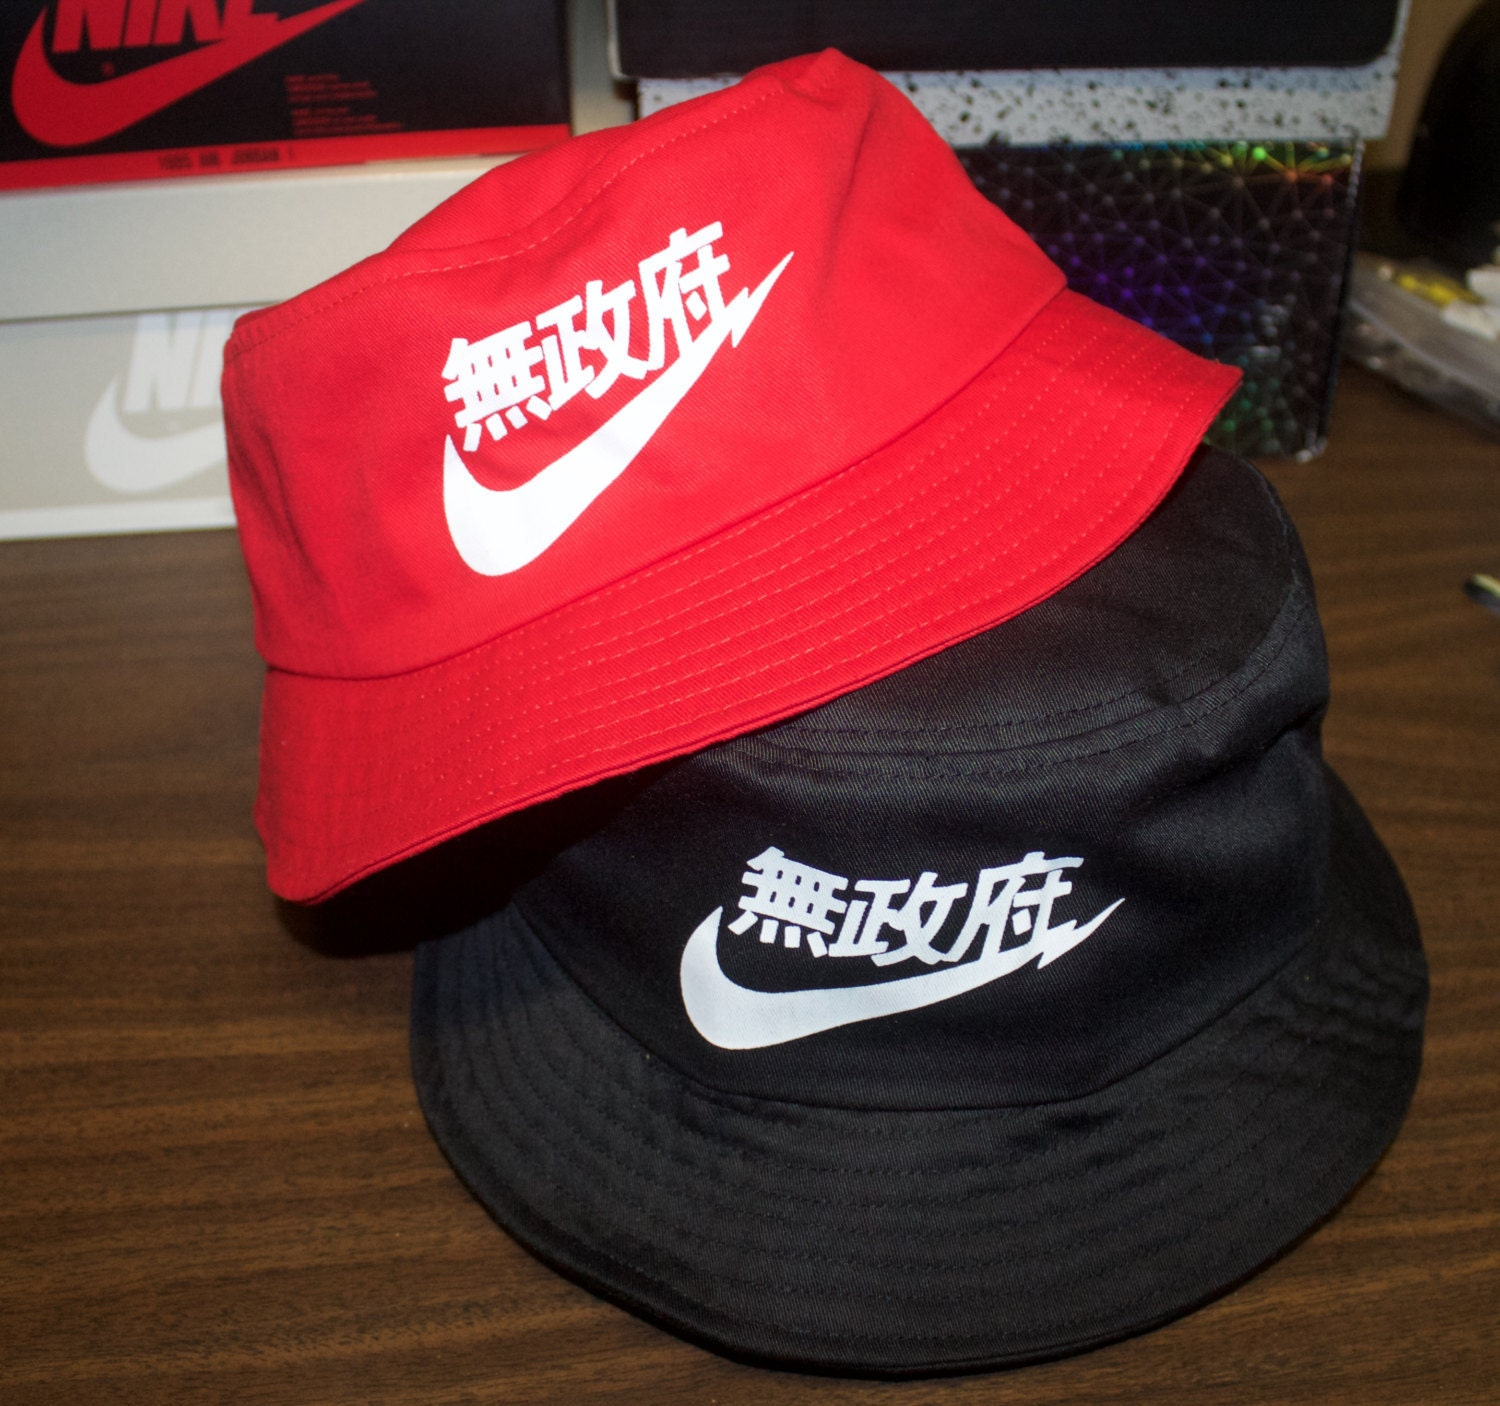 406d7e69239 Chinese Nike Swoosh Bucket Hat Red   Black by YFpro on Etsy